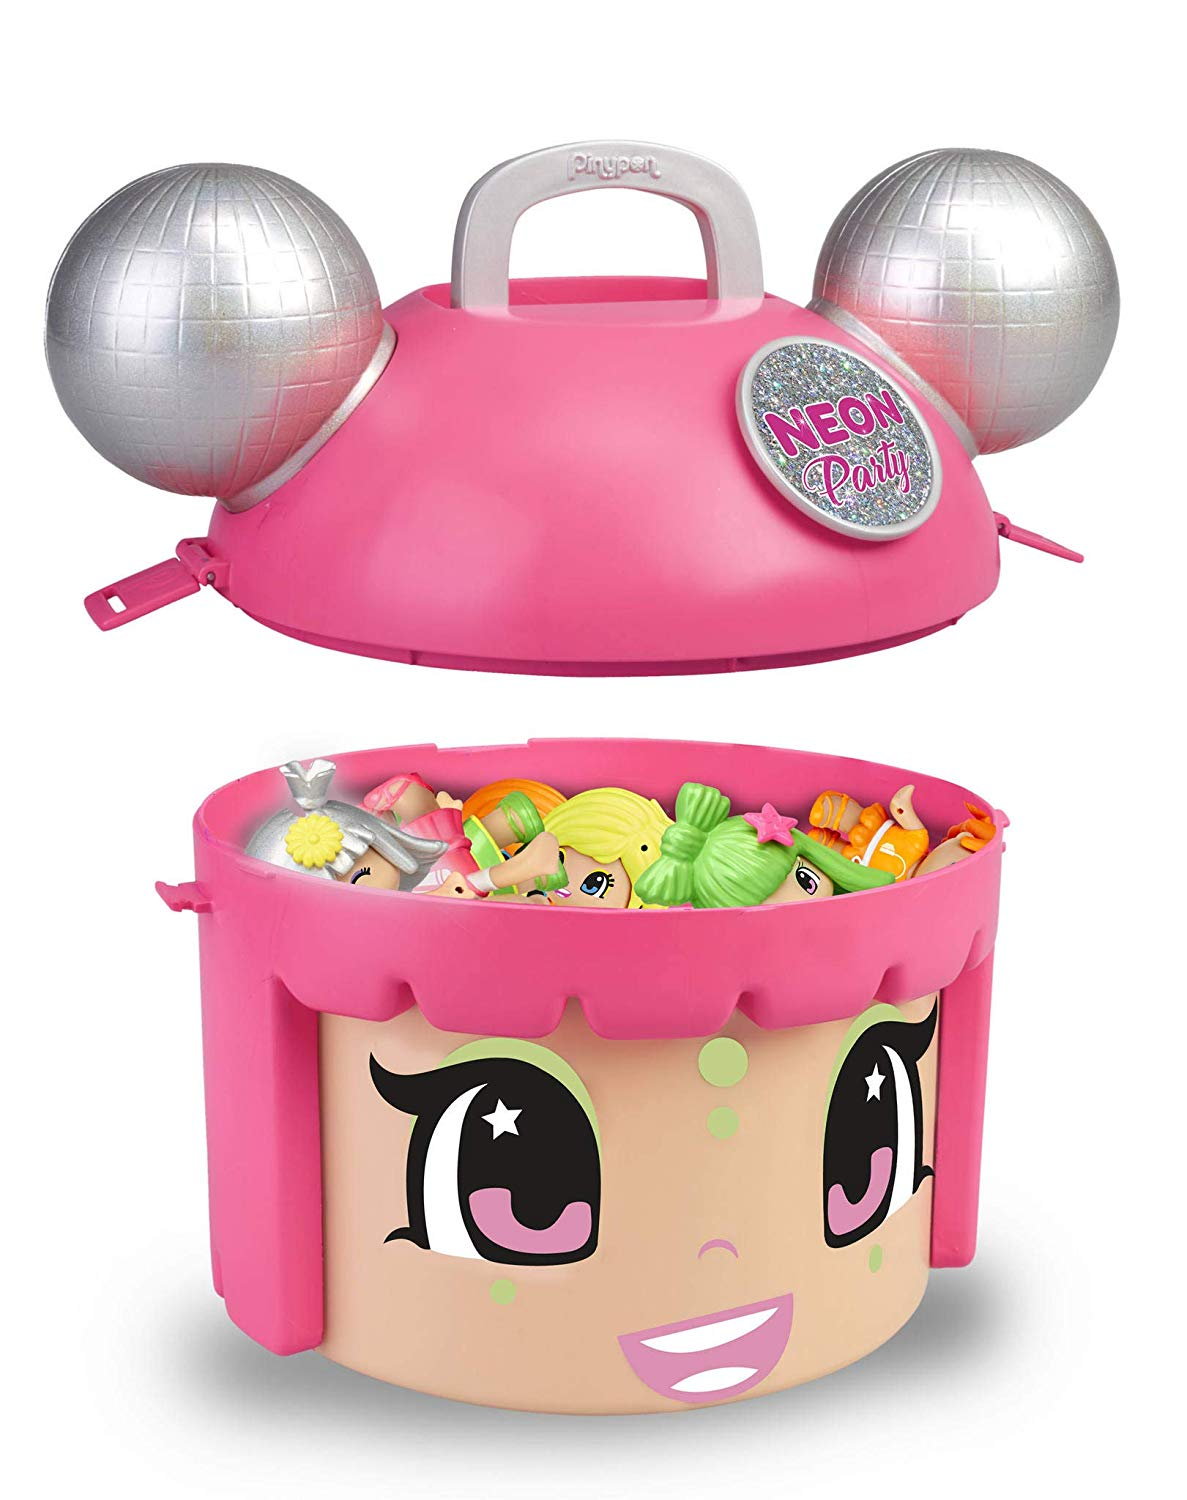 PINYPON MIX IS MAX NEON PARTY 700015210